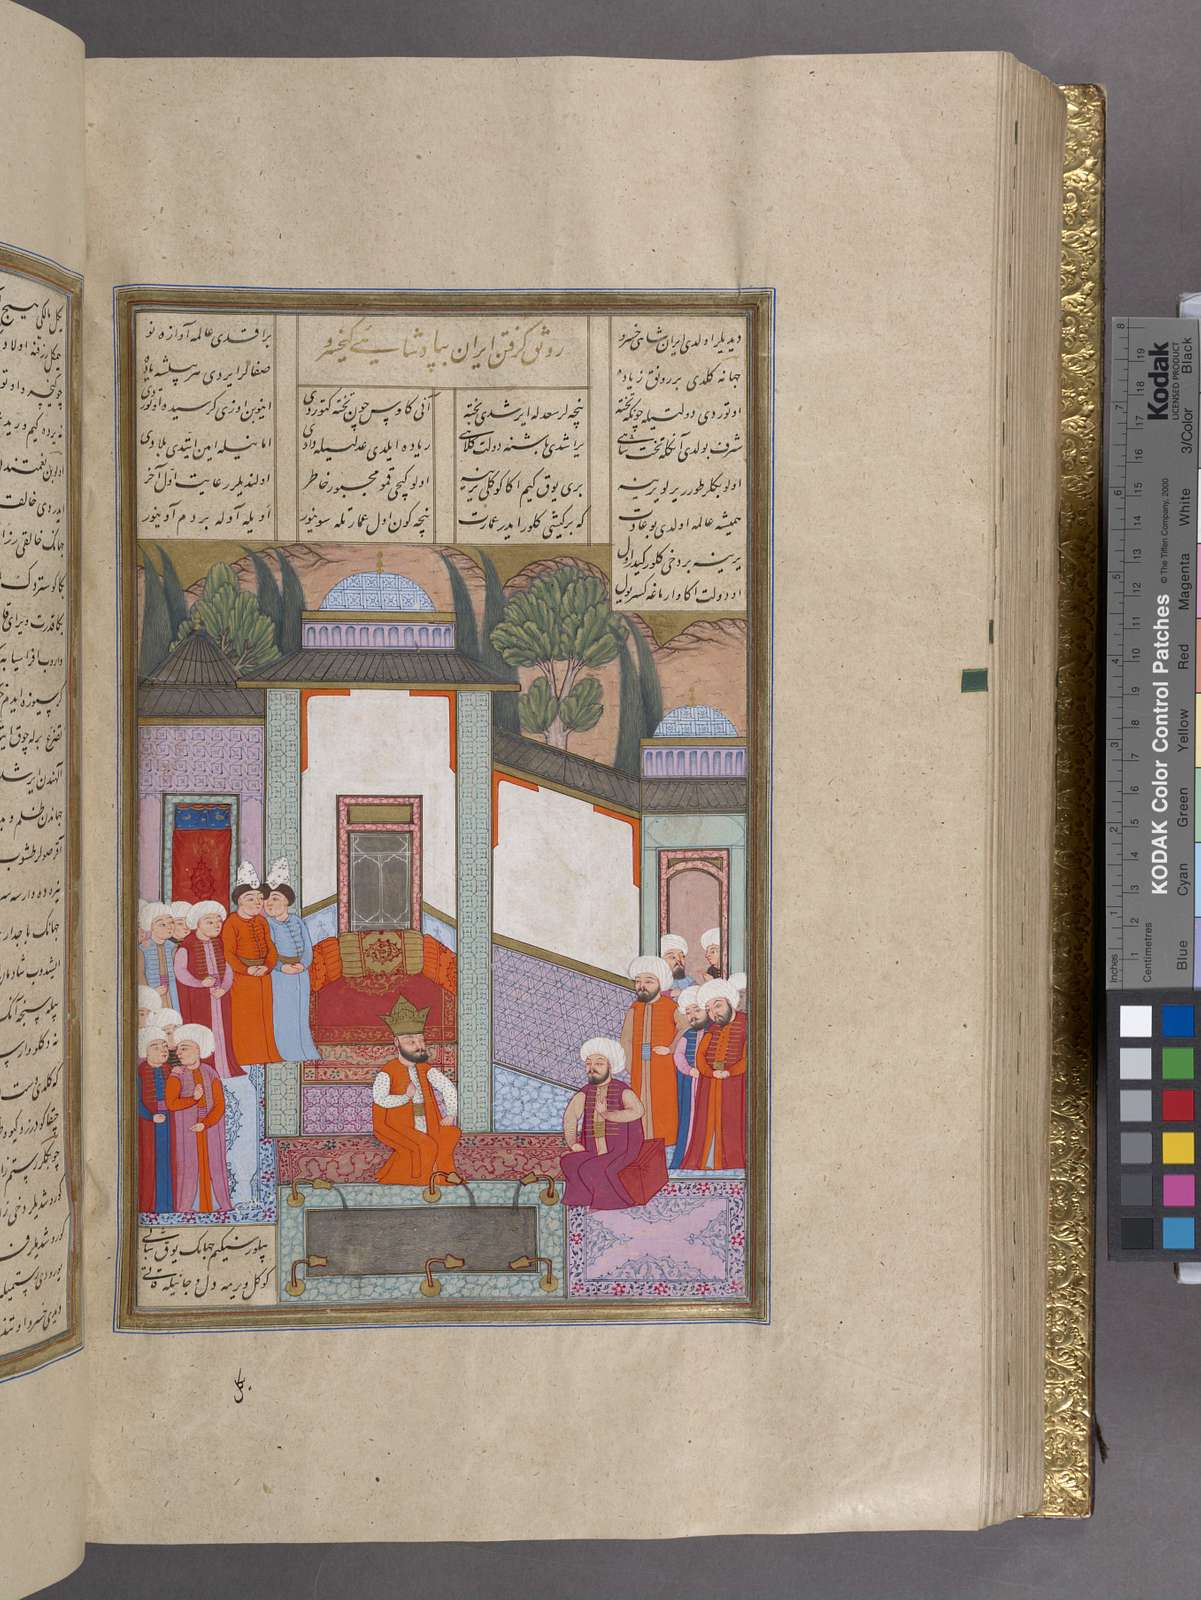 The new king Kay Khusrau talks with nobles of his court.